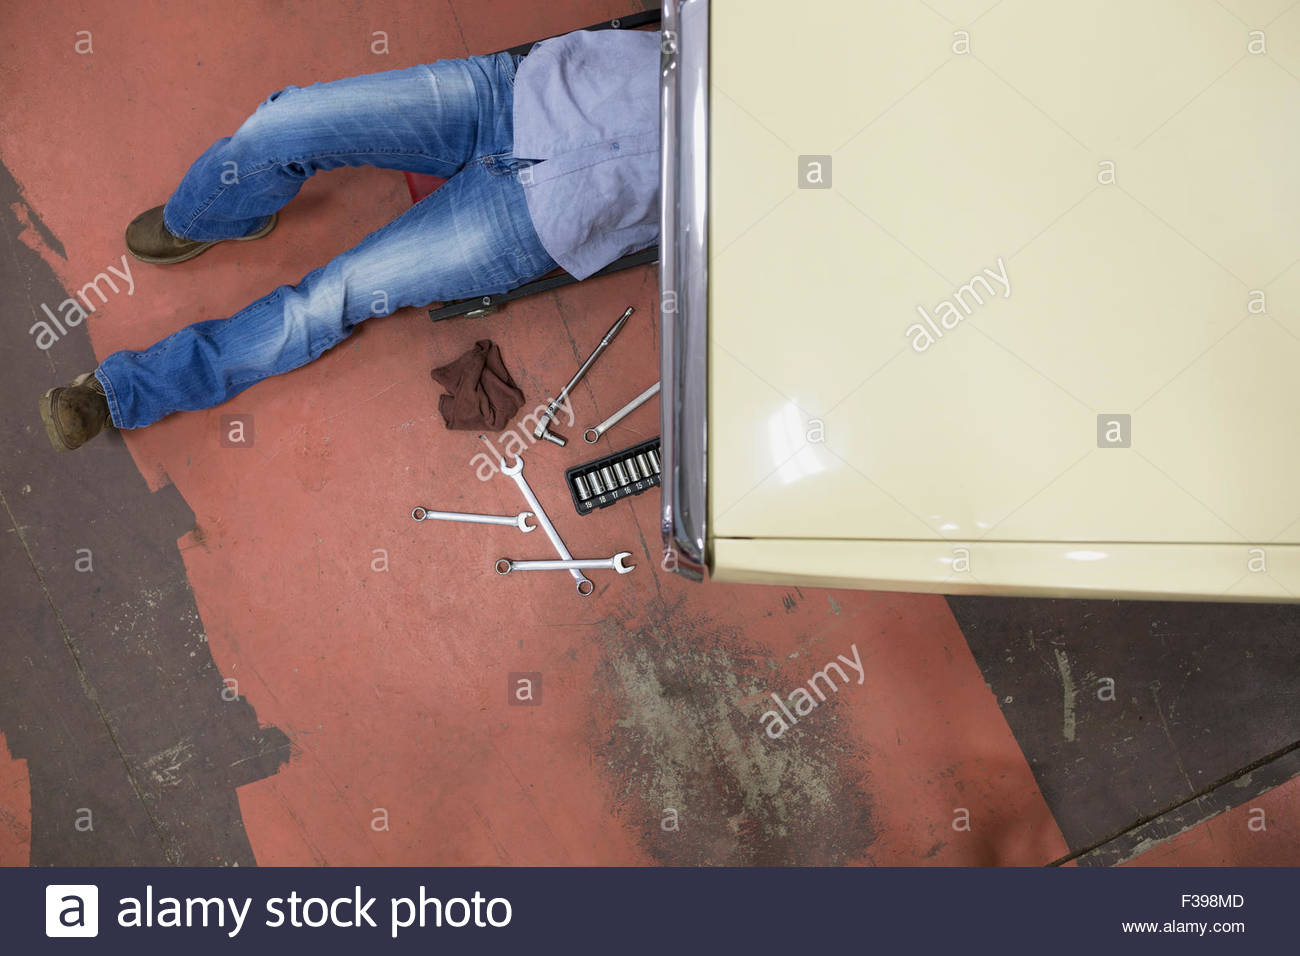 Overhead view female mechanic underneath car - Stock Image